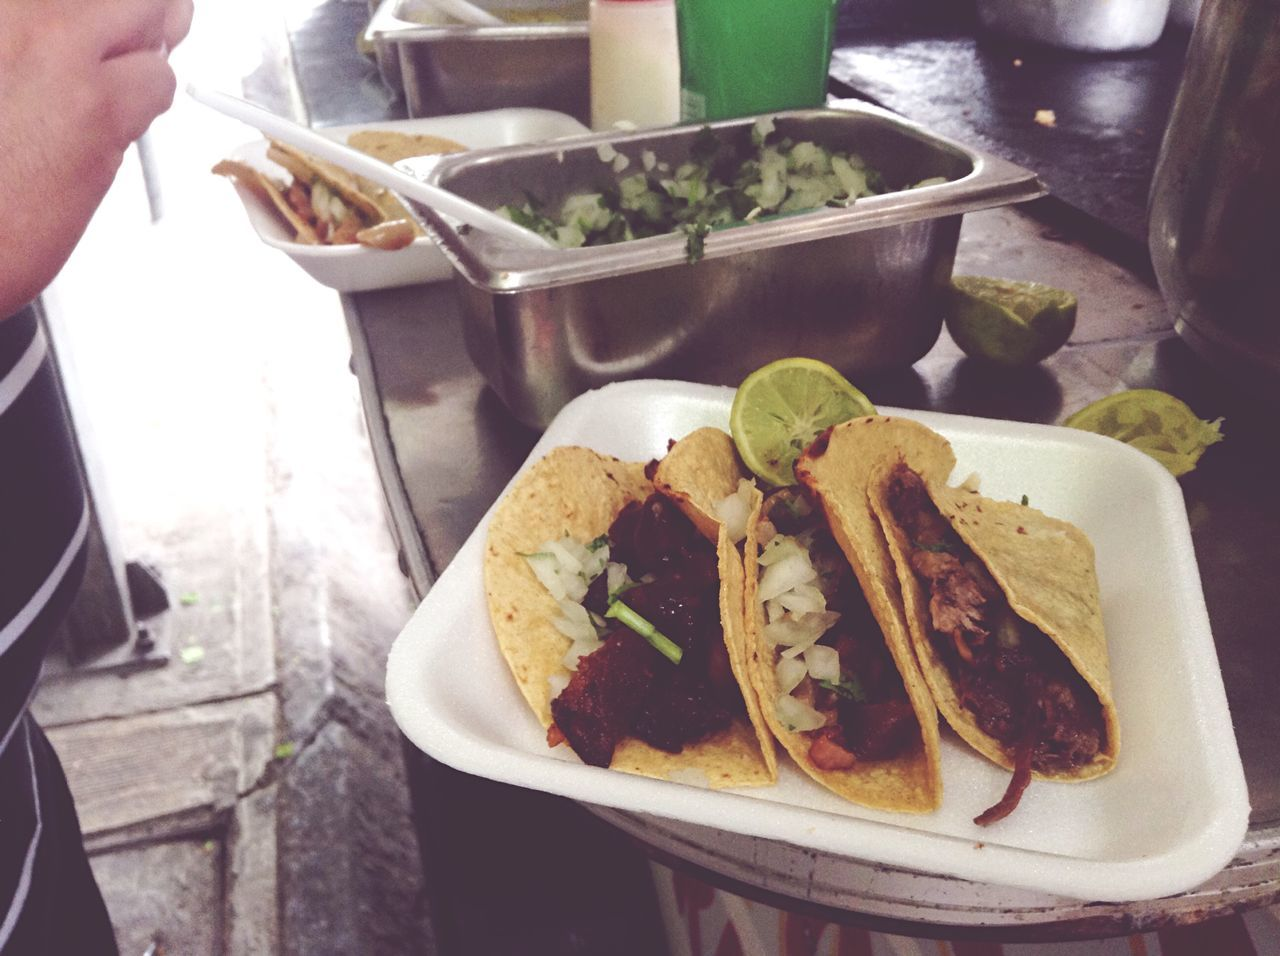 Time For Breakfast  once in a while is not bad... Eating Tacos Ipodphotographer OpenEdit Popular Photos The Foodie - 2015 EyeEm Awards Streetphotography Monday Good Morning Show Us Your Takeaway!